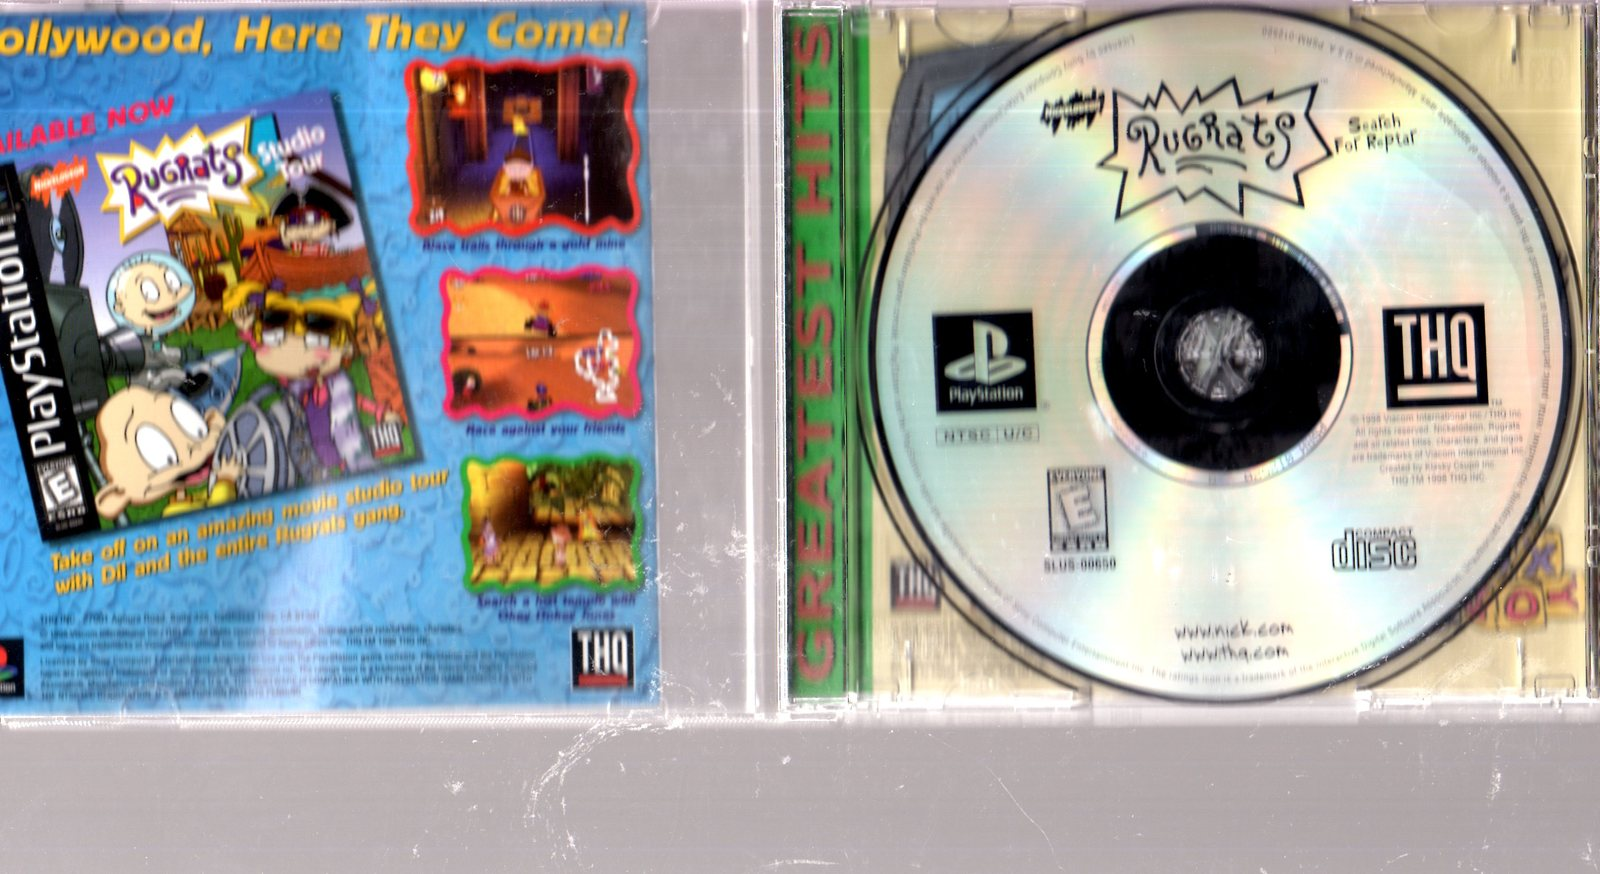 PlayStation (Greatest Hits)  Rug Rats -Search for Reptar